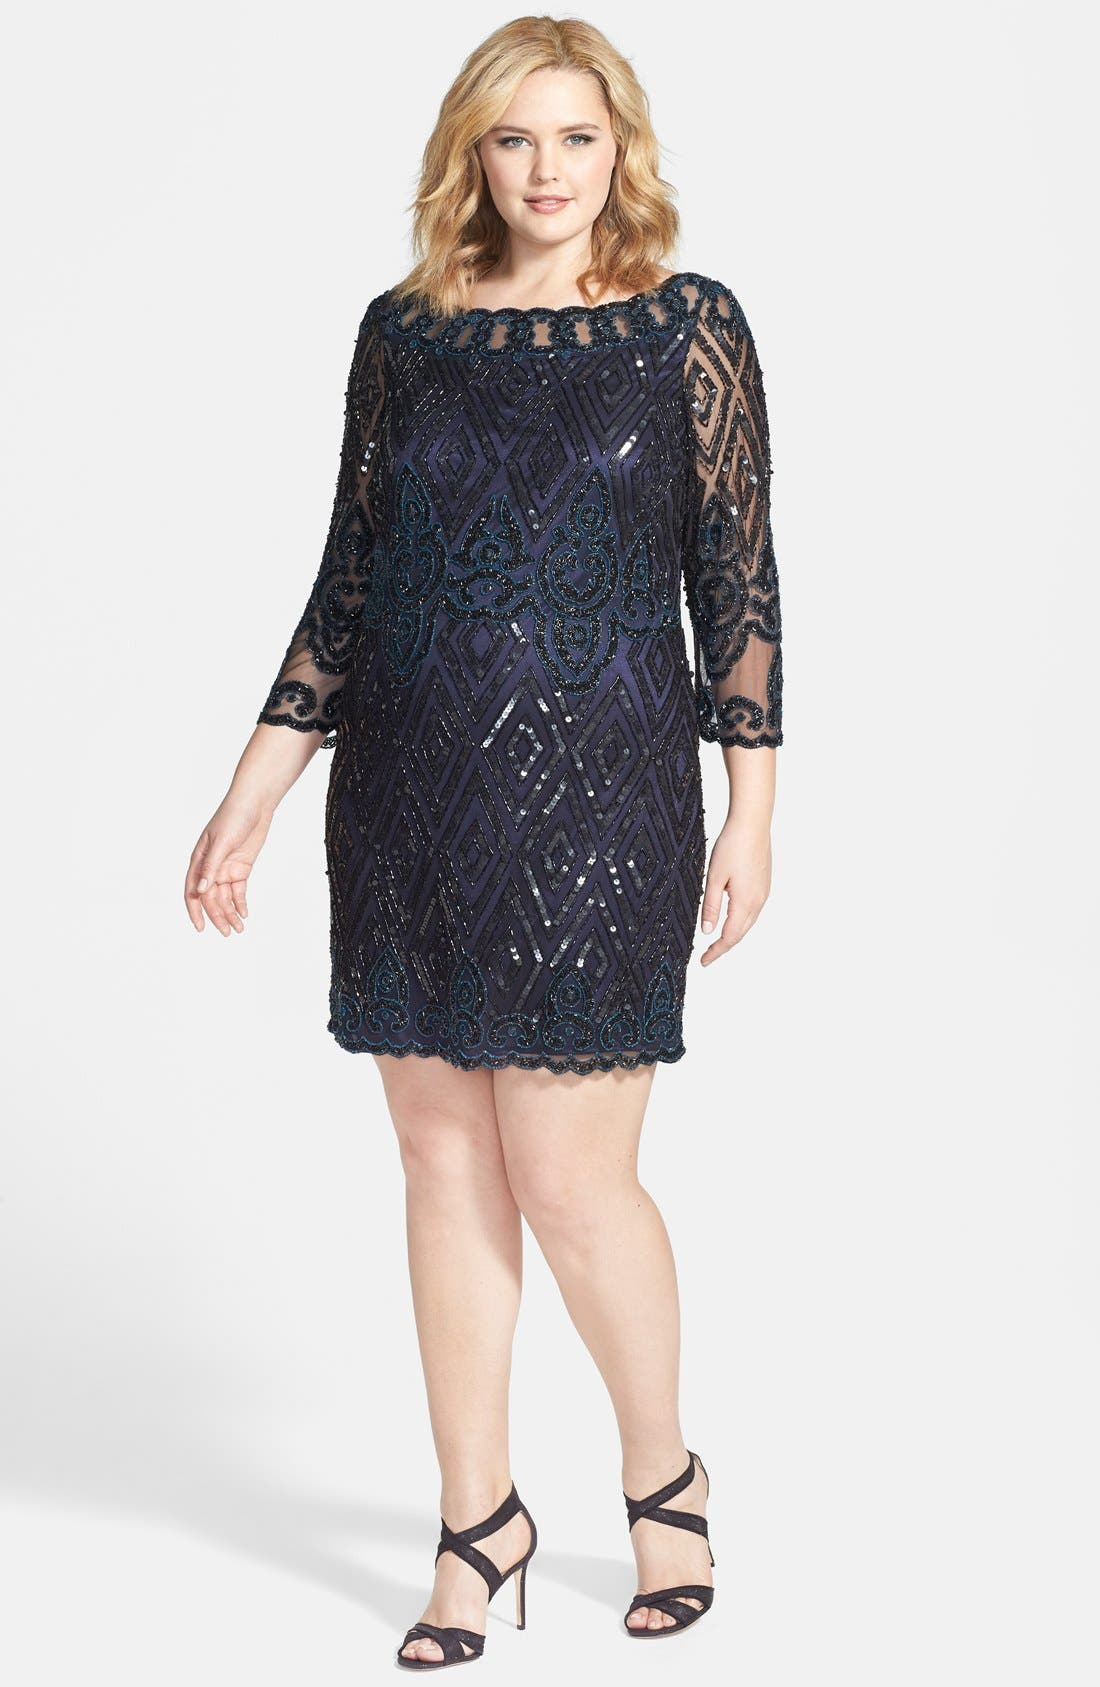 Main Image - Pisarro Nights Embellished Short Cocktail Dress (Plus Size)